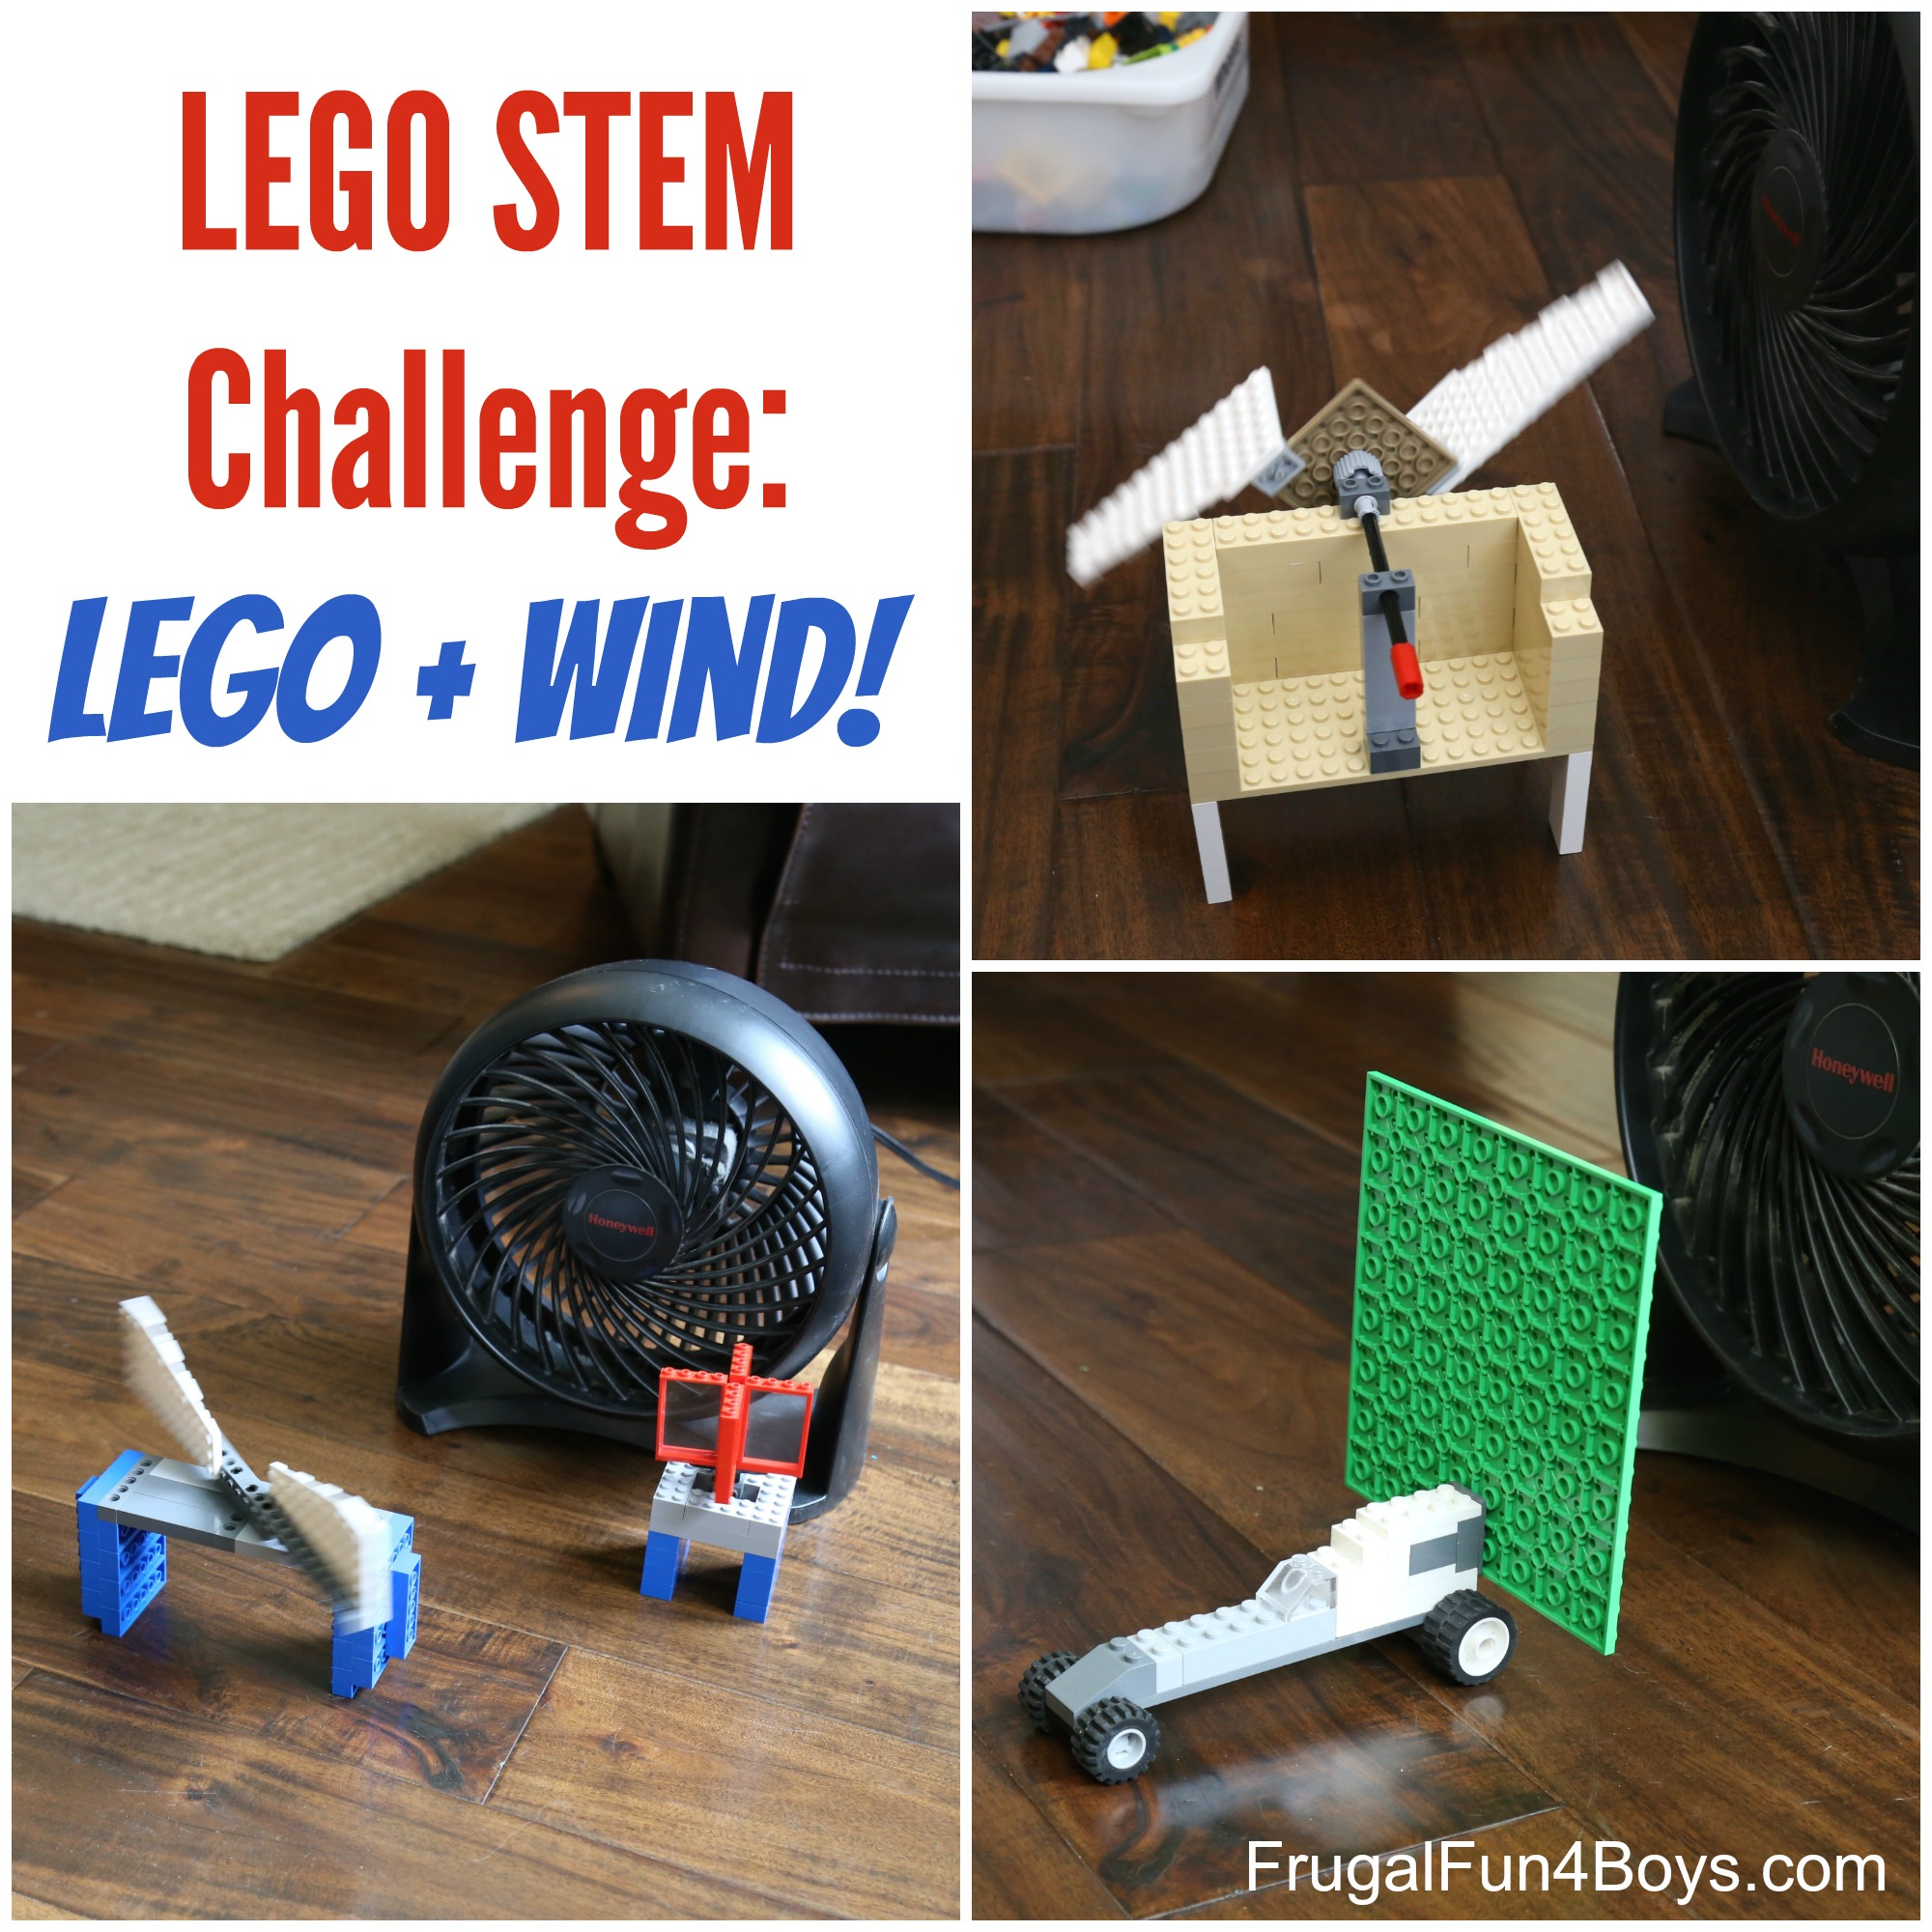 LEGO STEM Challenge: Wind Powered LEGO Contraptions!